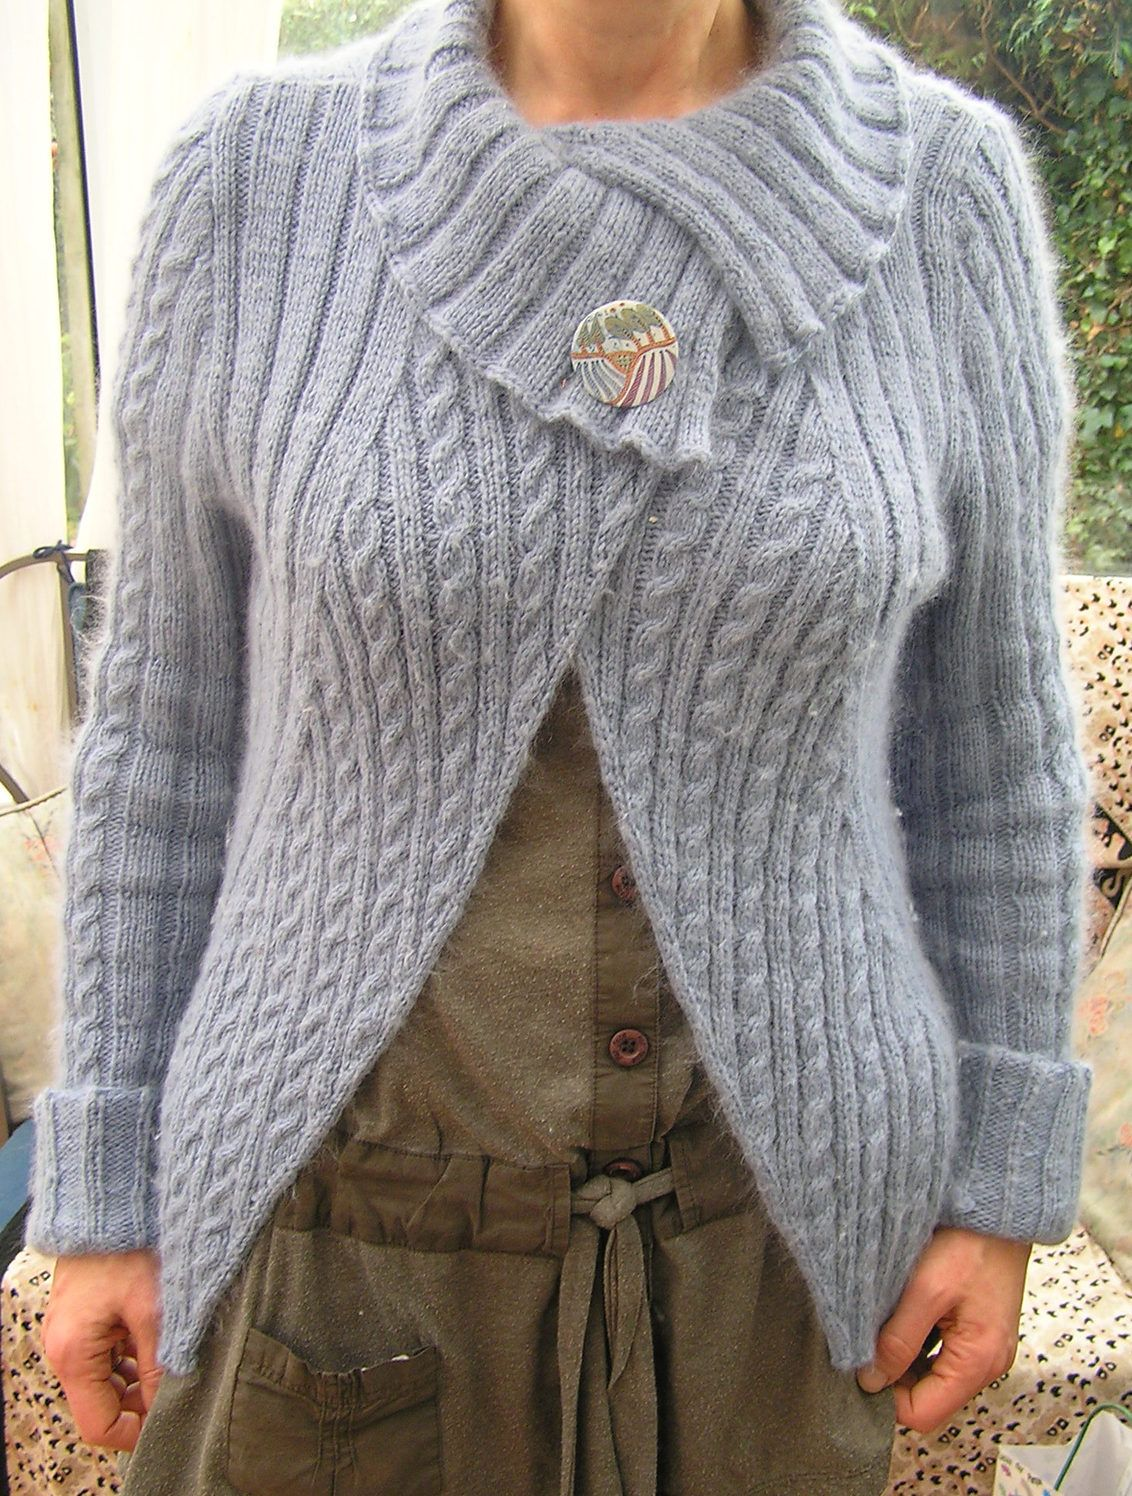 Wrap cardigan knitting patterns knit patterns cable and shapes free knitting pattern for twist and shout cardigan this long sleeved split collar bankloansurffo Image collections